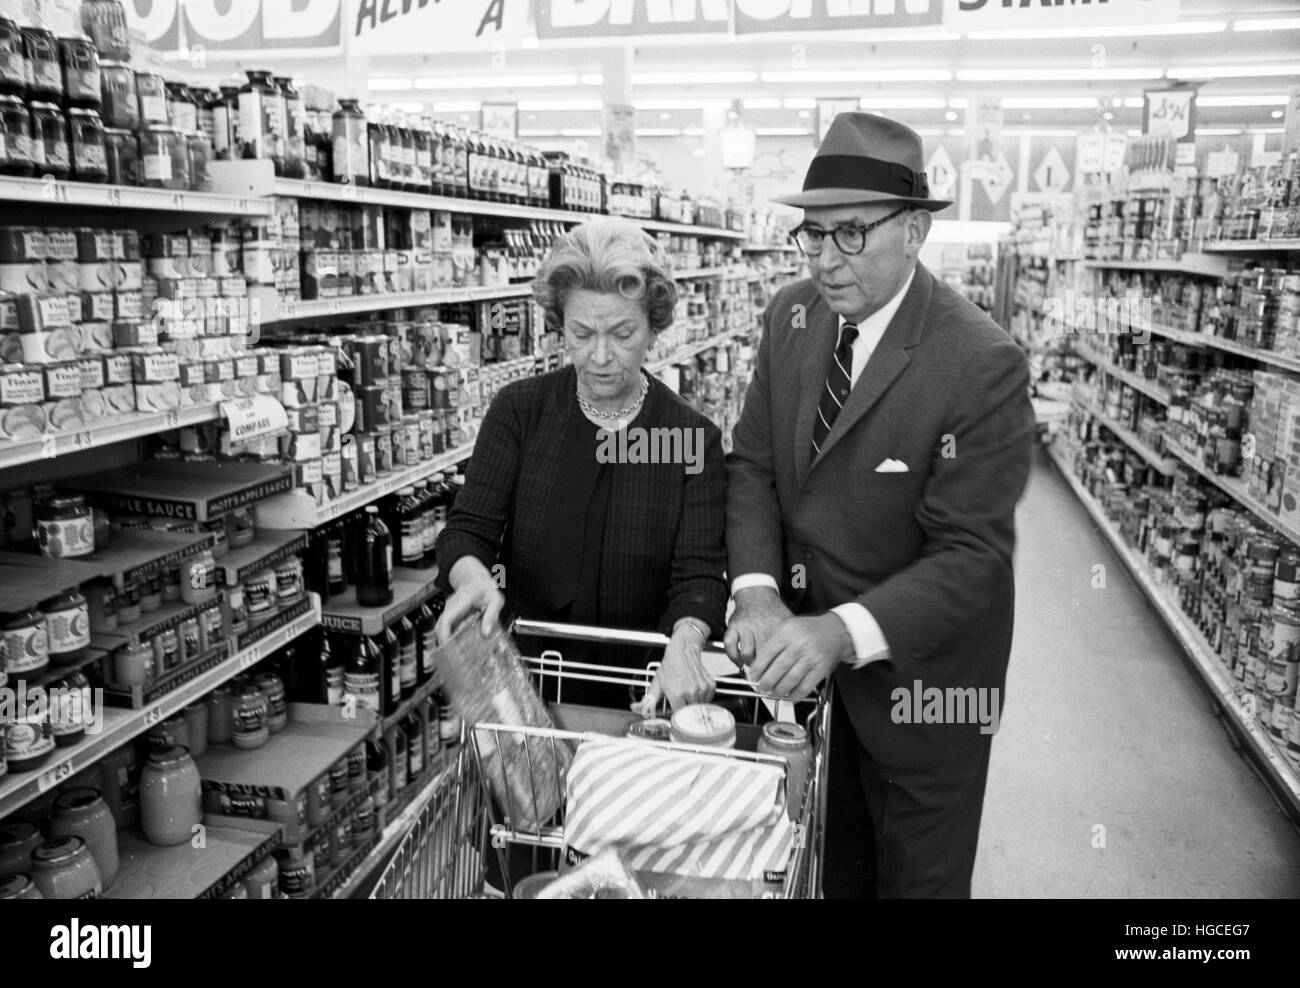 Charles G. Mortimer, shopping for General Foods products with his wife. - Stock Image